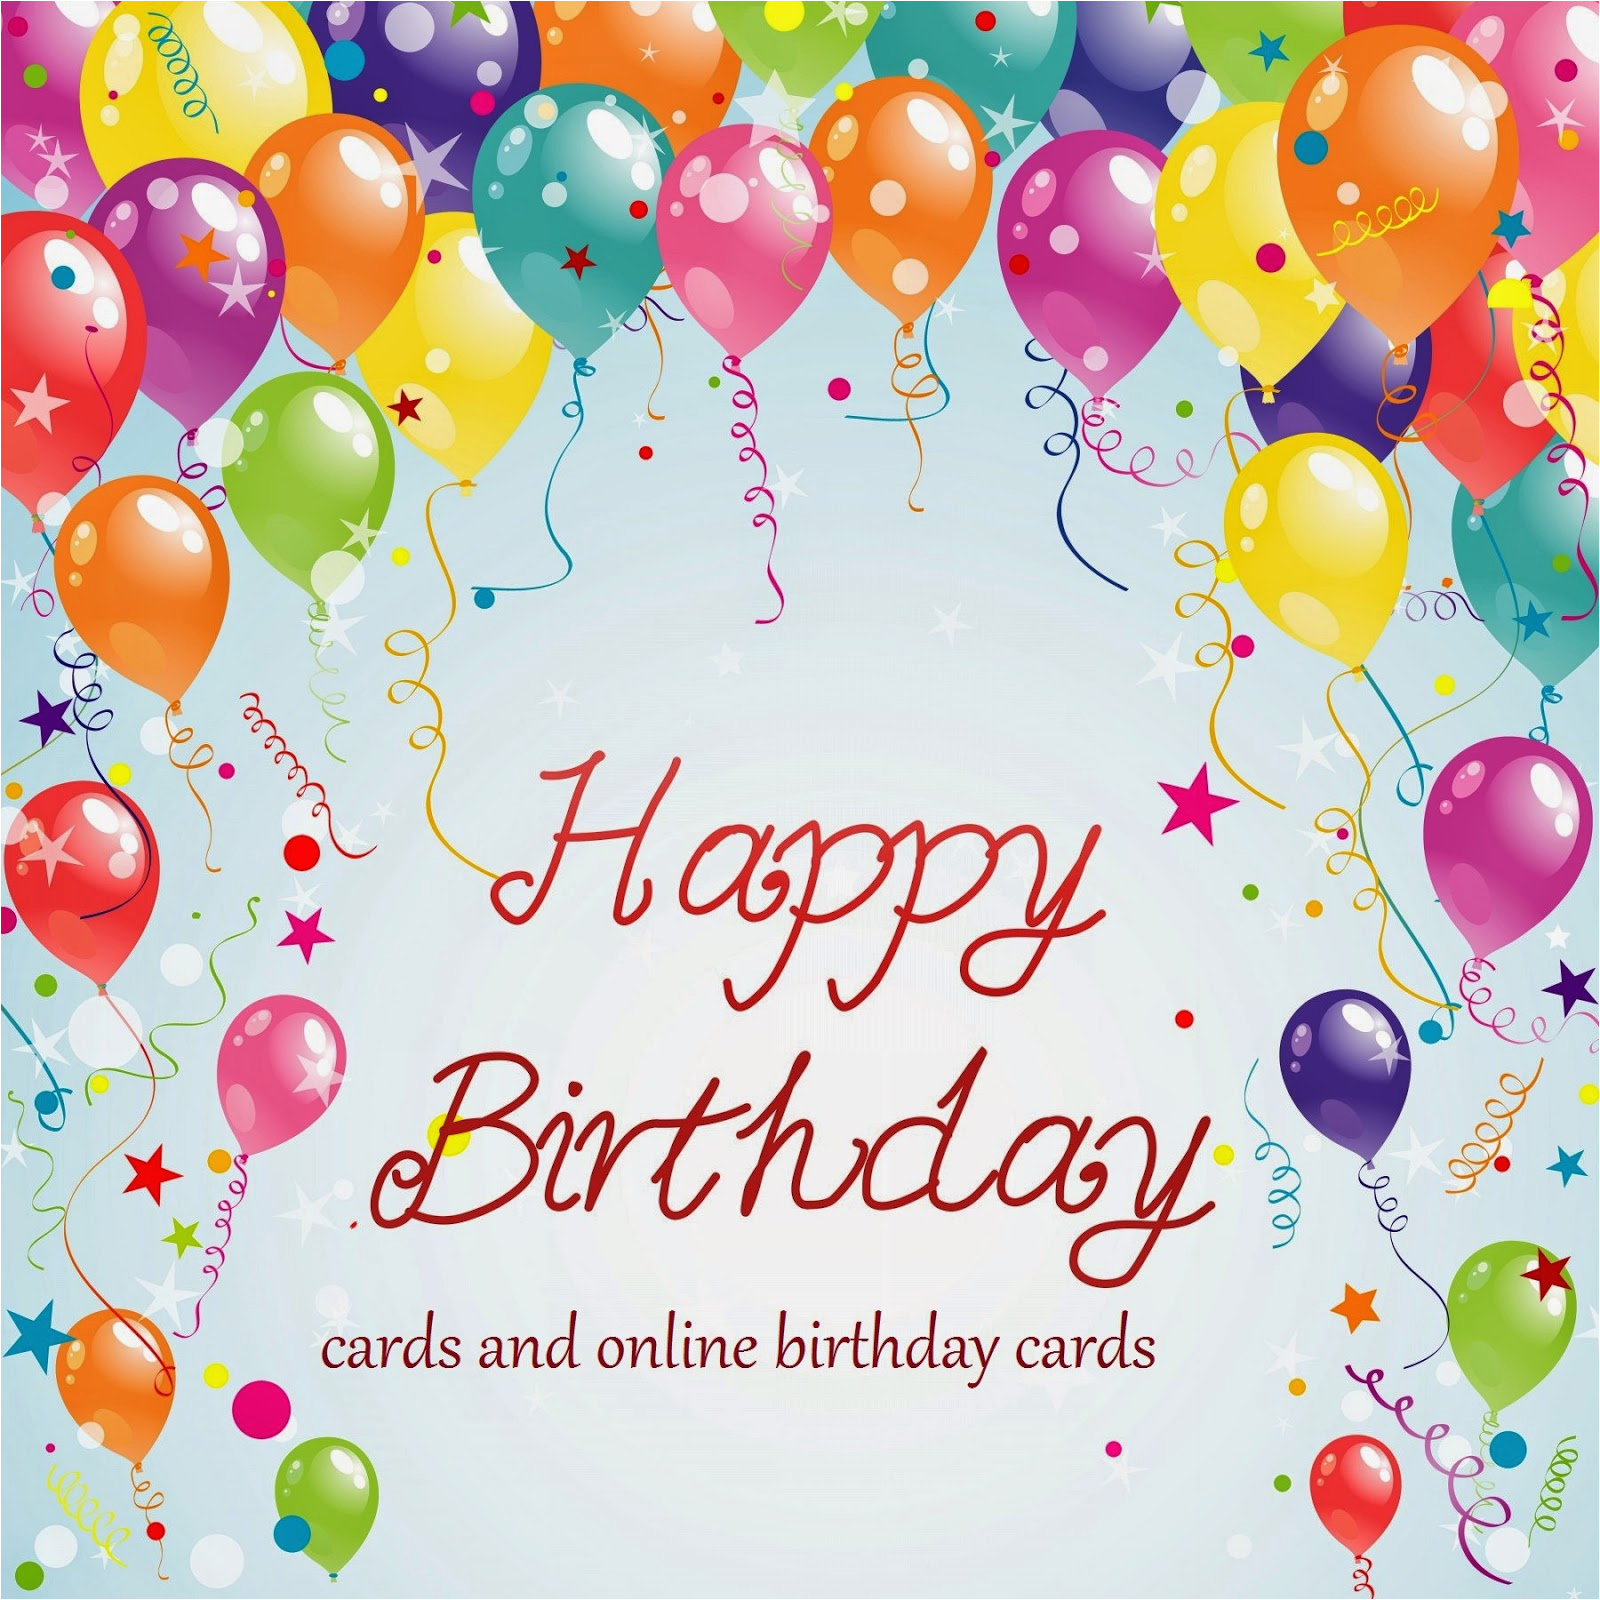 Free Printable Happy Birthday Cards Online And E